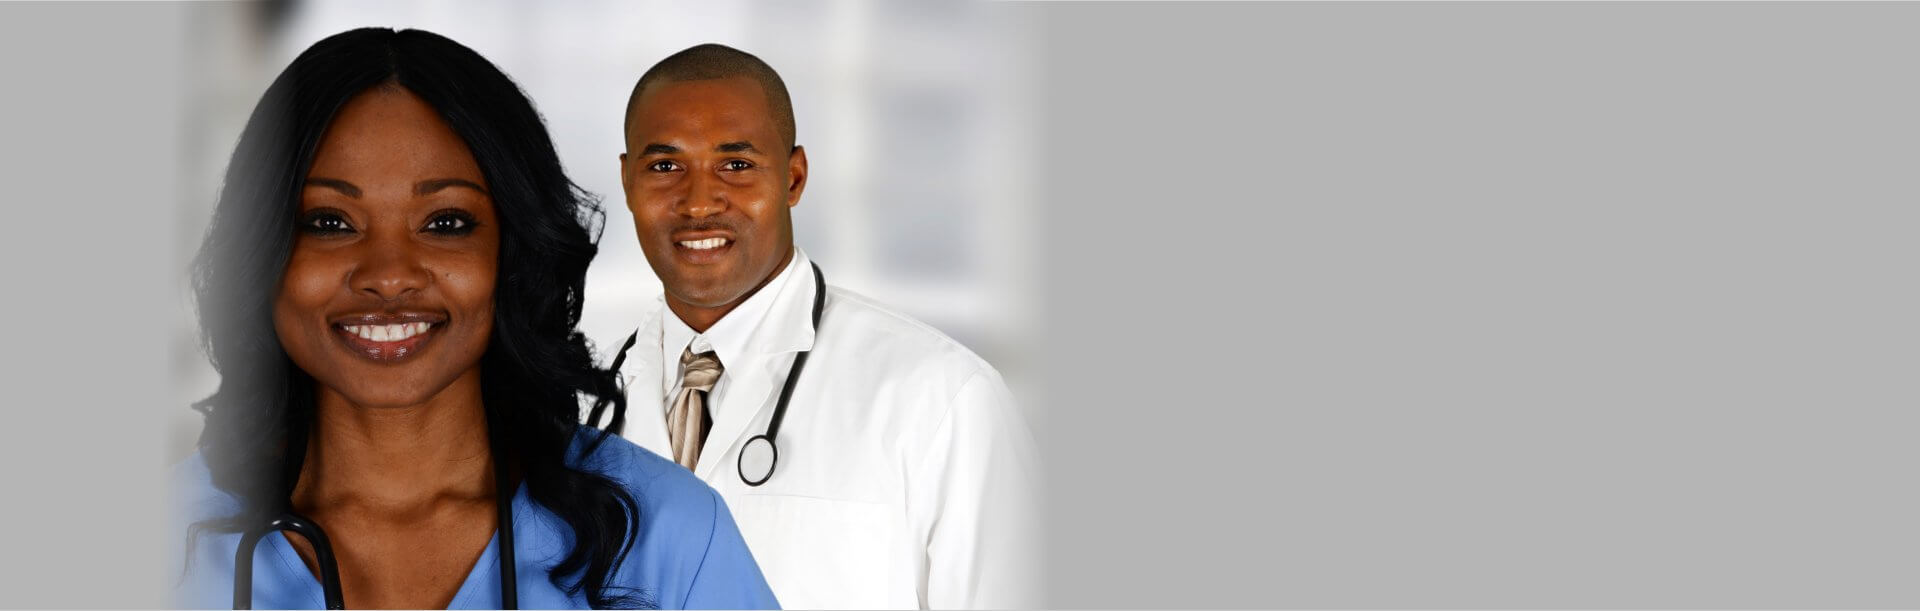 two medical staff